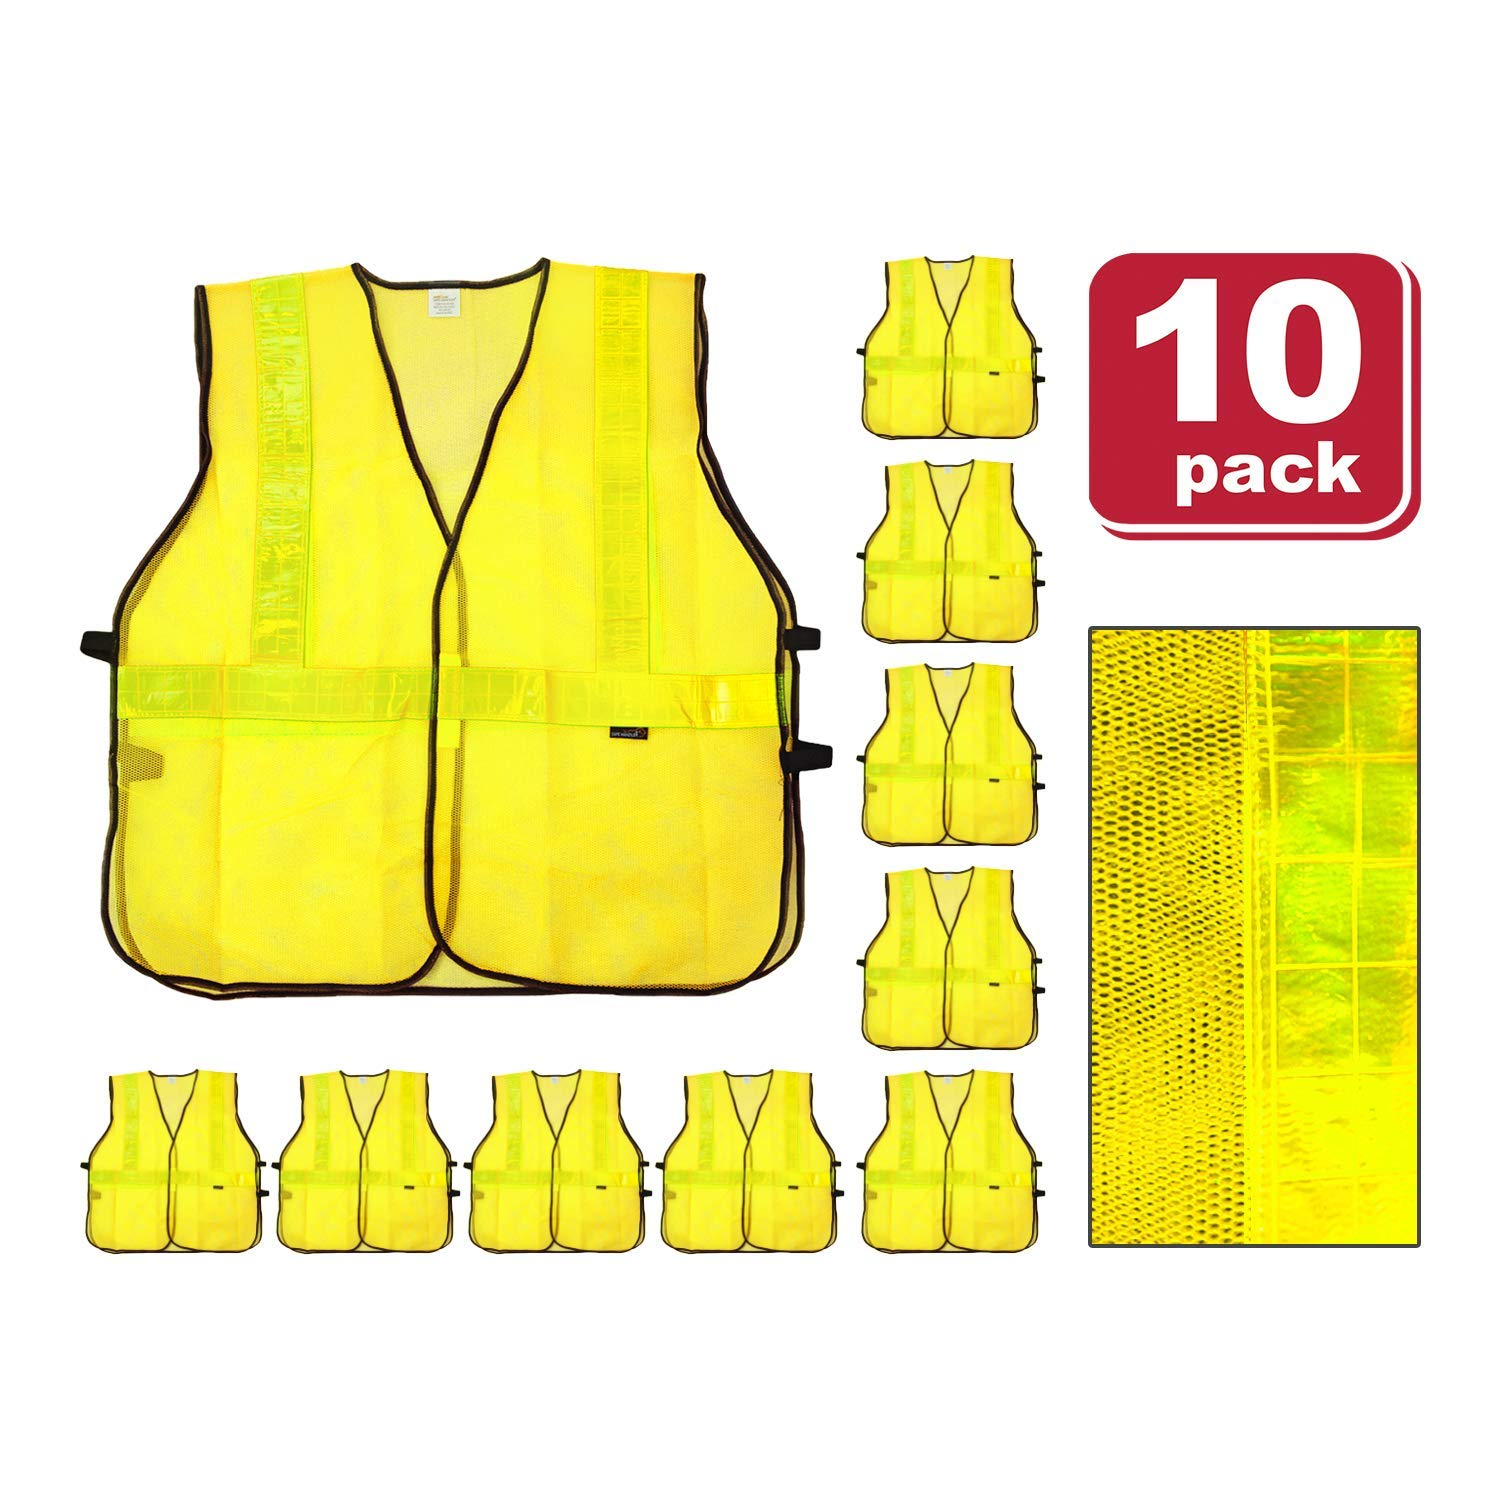 Efficient Reflective Vest Breathable Mesh Multi Pockets Construction Traffic Safety Protective Jacket Fluorescent Clothes Work Clothing Security & Protection Safety Clothing